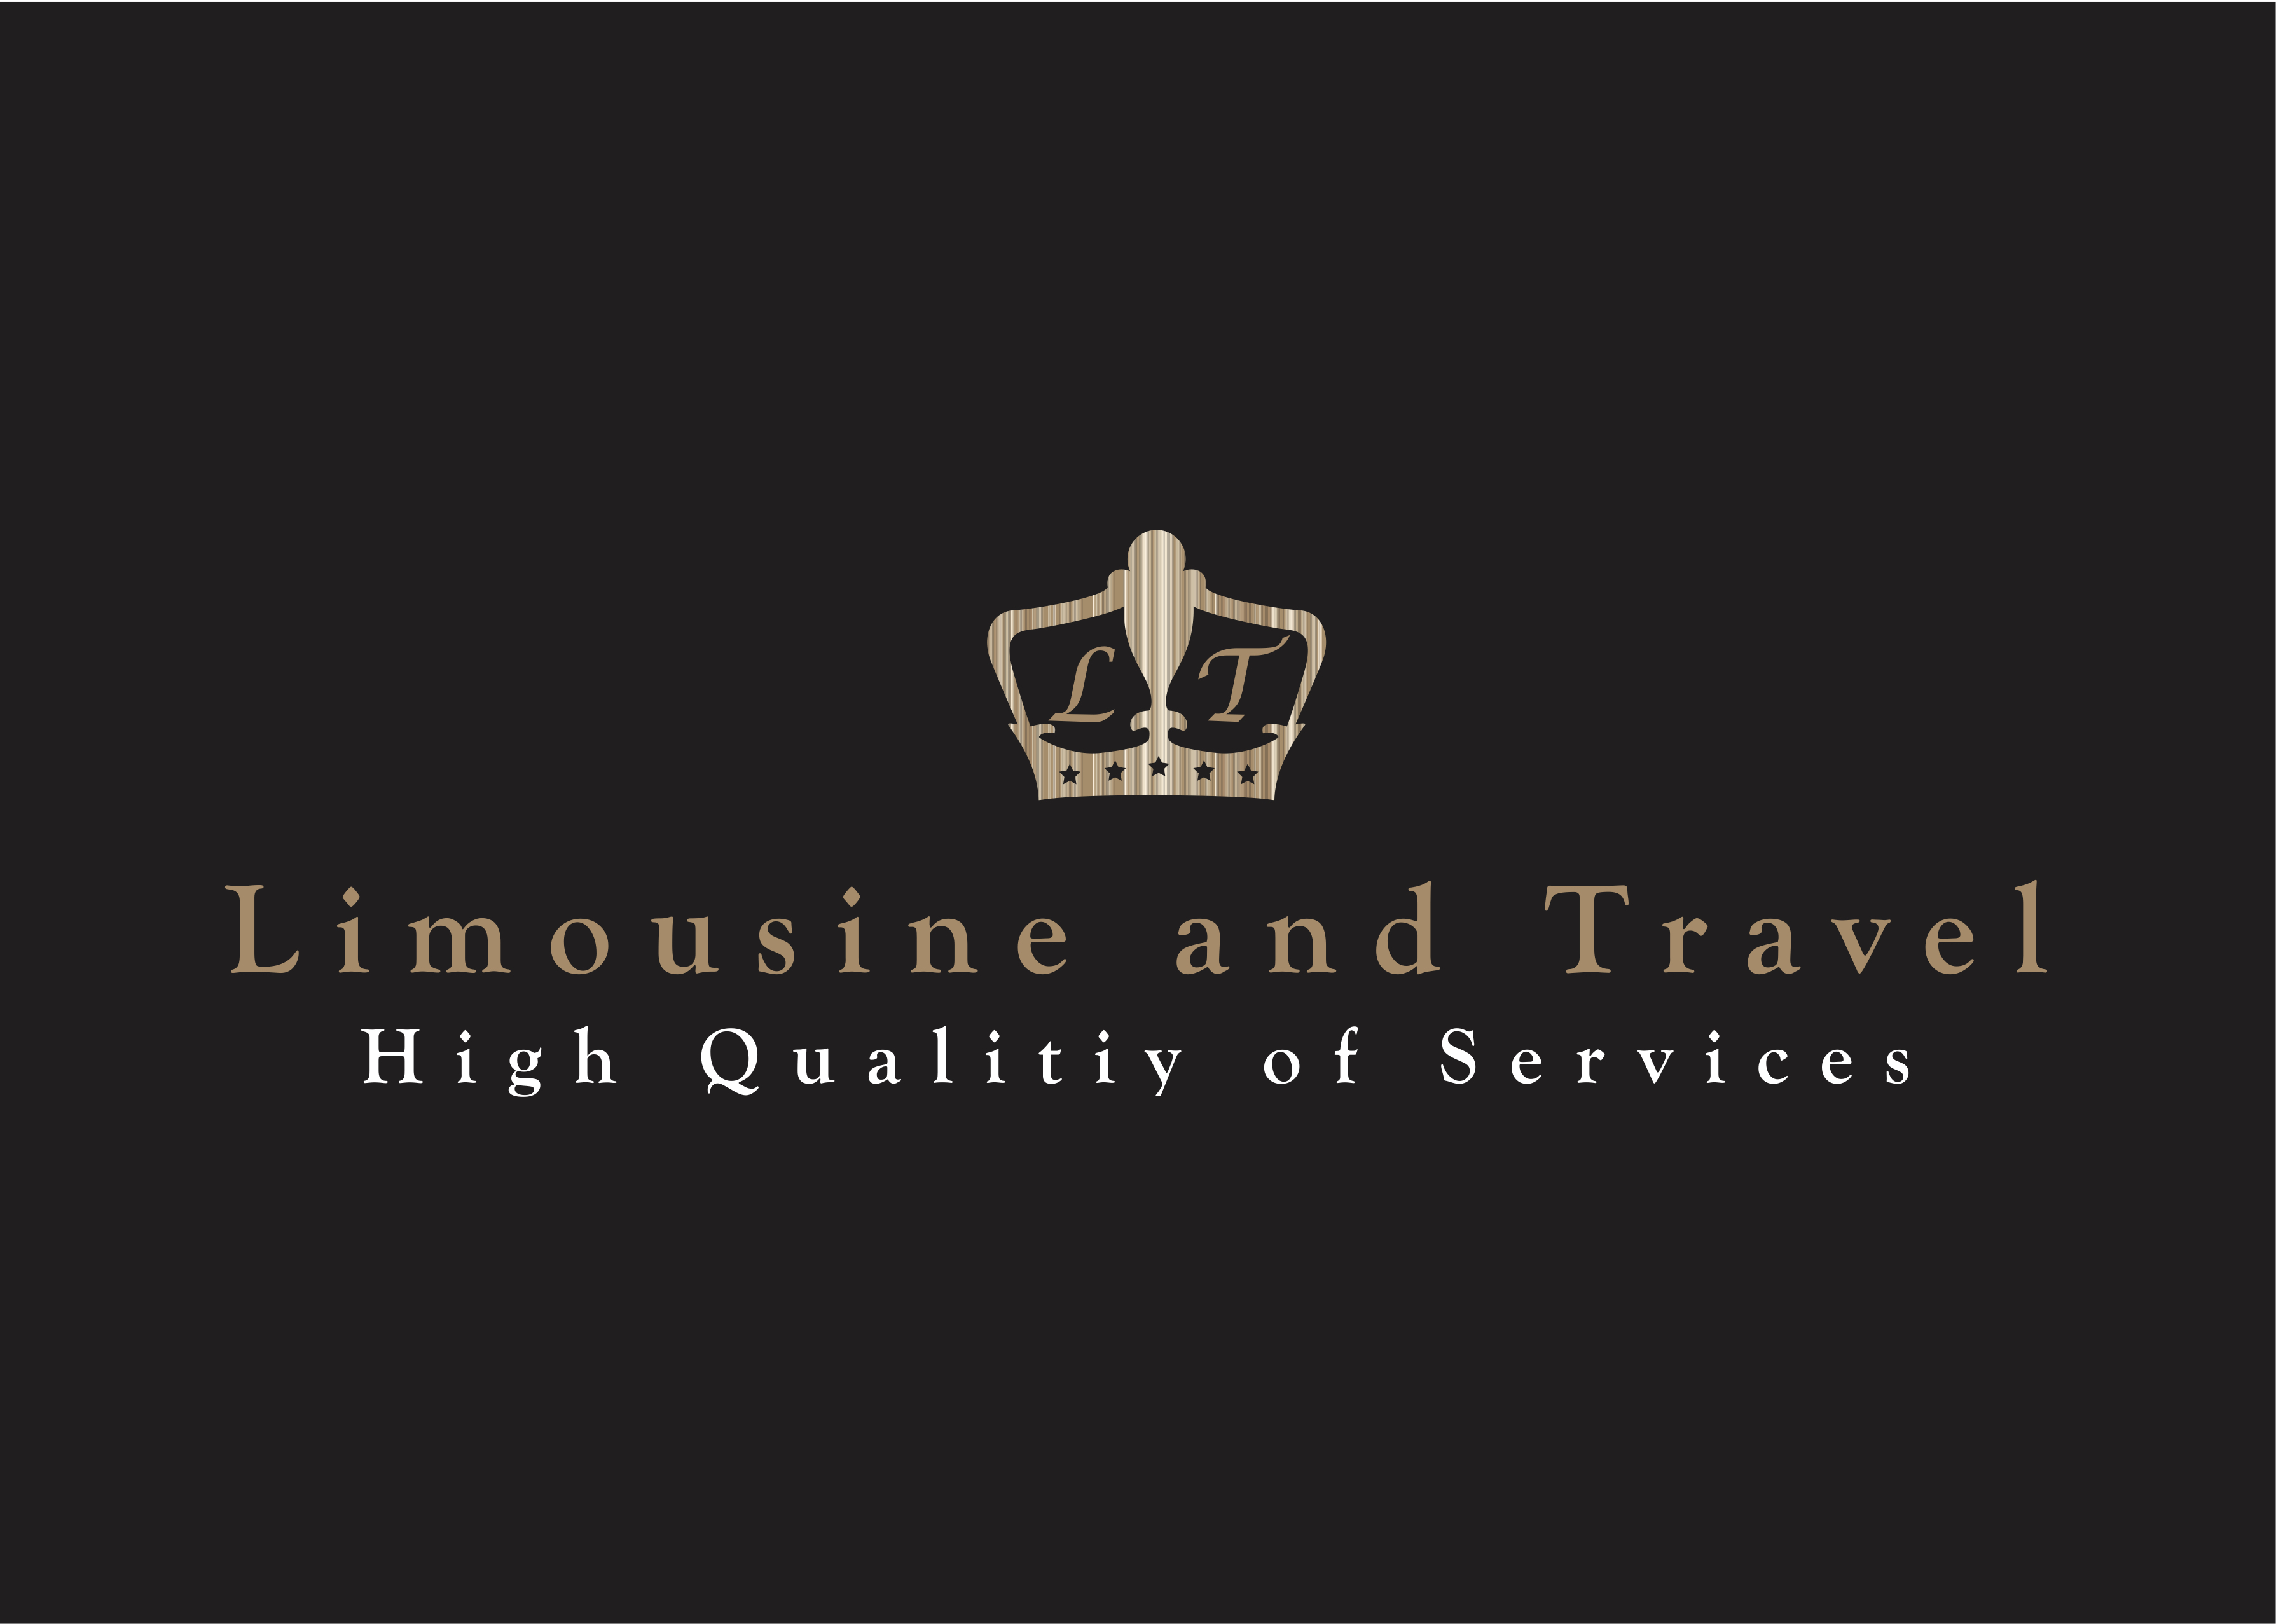 Limousine and Travel